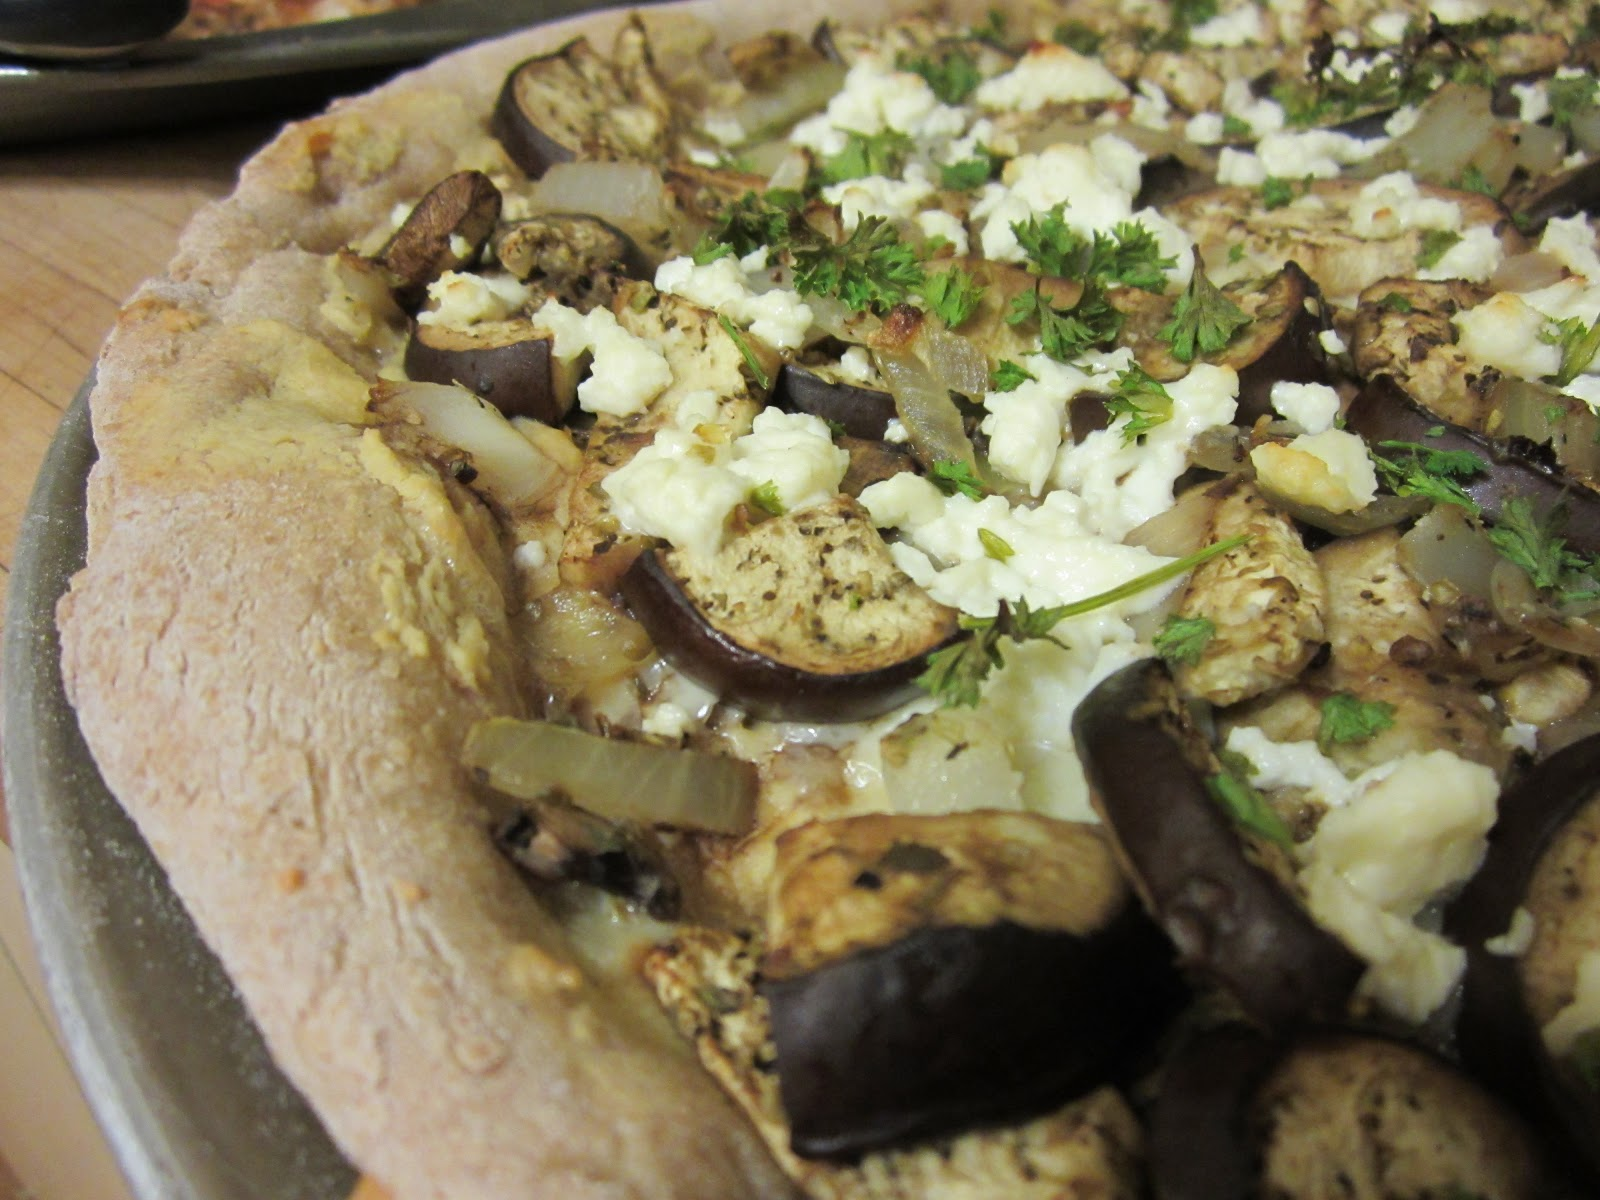 The Scarlet Spoon: Roasted Eggplant and Hummus Pizza